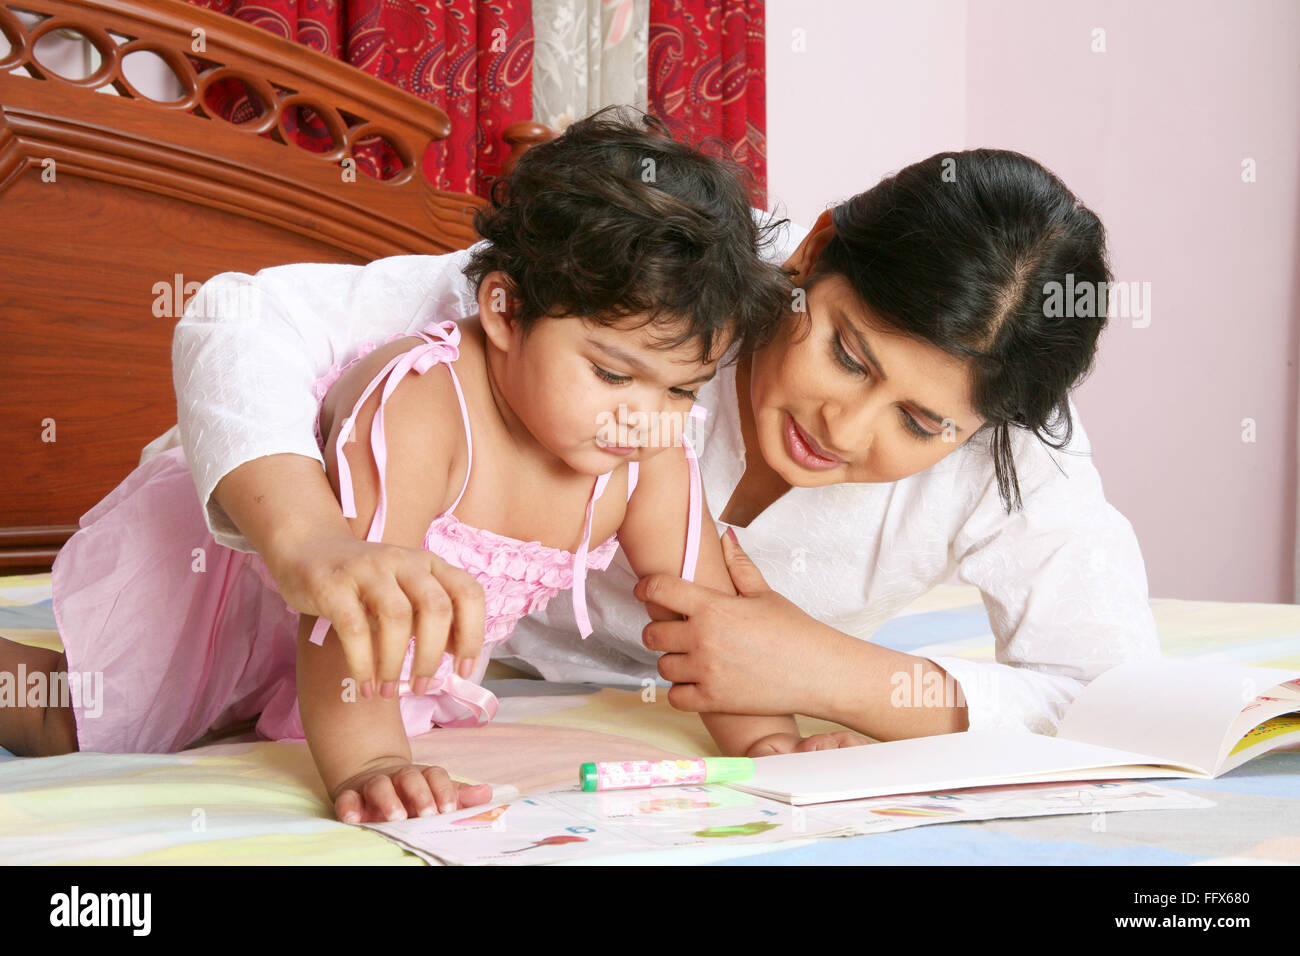 young mother telling story and teaching to baby girl of one and half year lying on bed with book - Stock Image